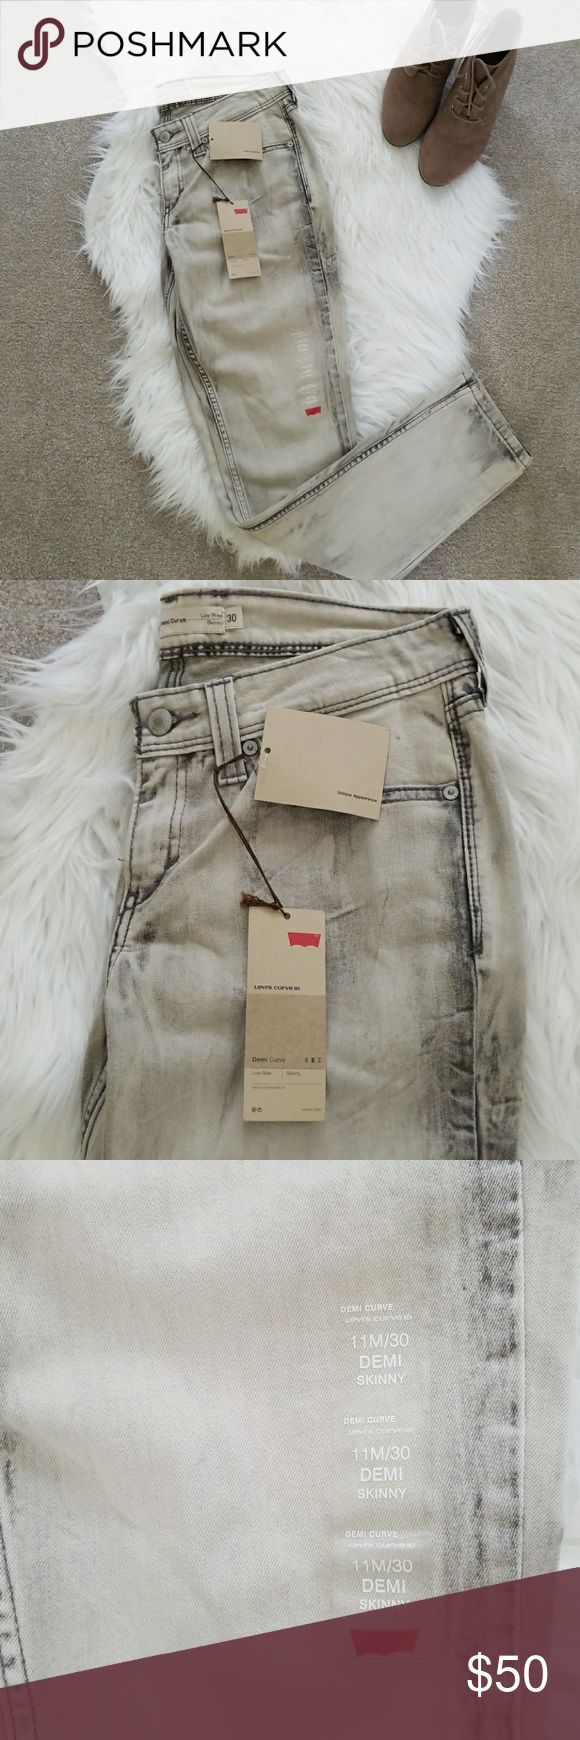 NWT Levi's Demi Curve Skinny Jeans NWT Levi's Demi Curve Skinny Jeans Low Rise Elegantly Hourglass | Accentuates your figure Size 30 Acid Wash Like Print Levi's Jeans Skinny